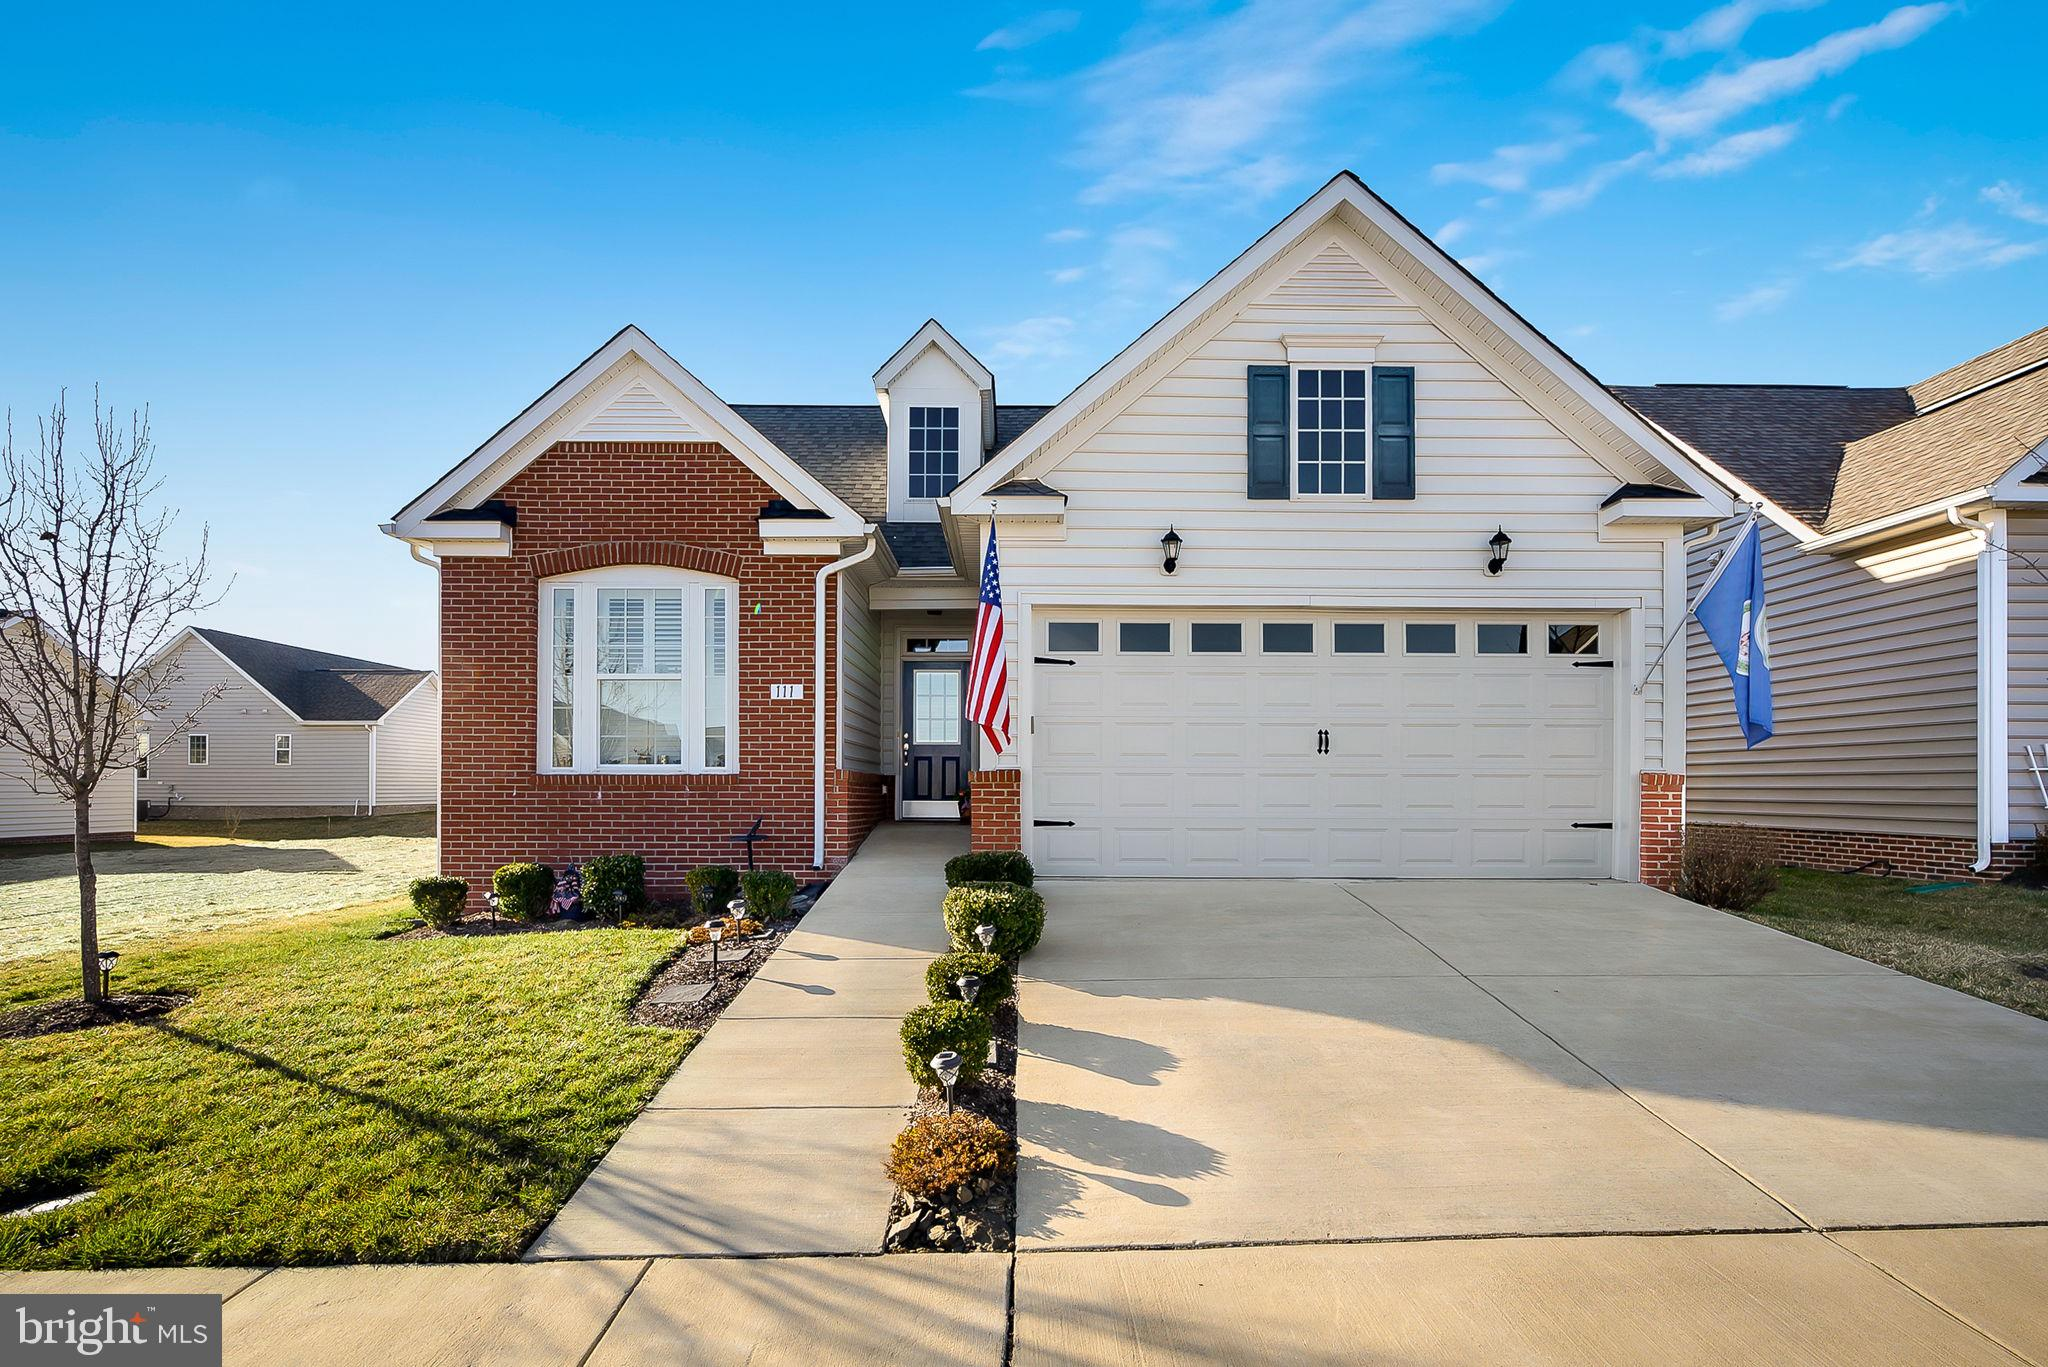 Cedar Meadows 55+  Gated Community. This Nickerson II model was built in 2016 with 3 bedrooms and 2